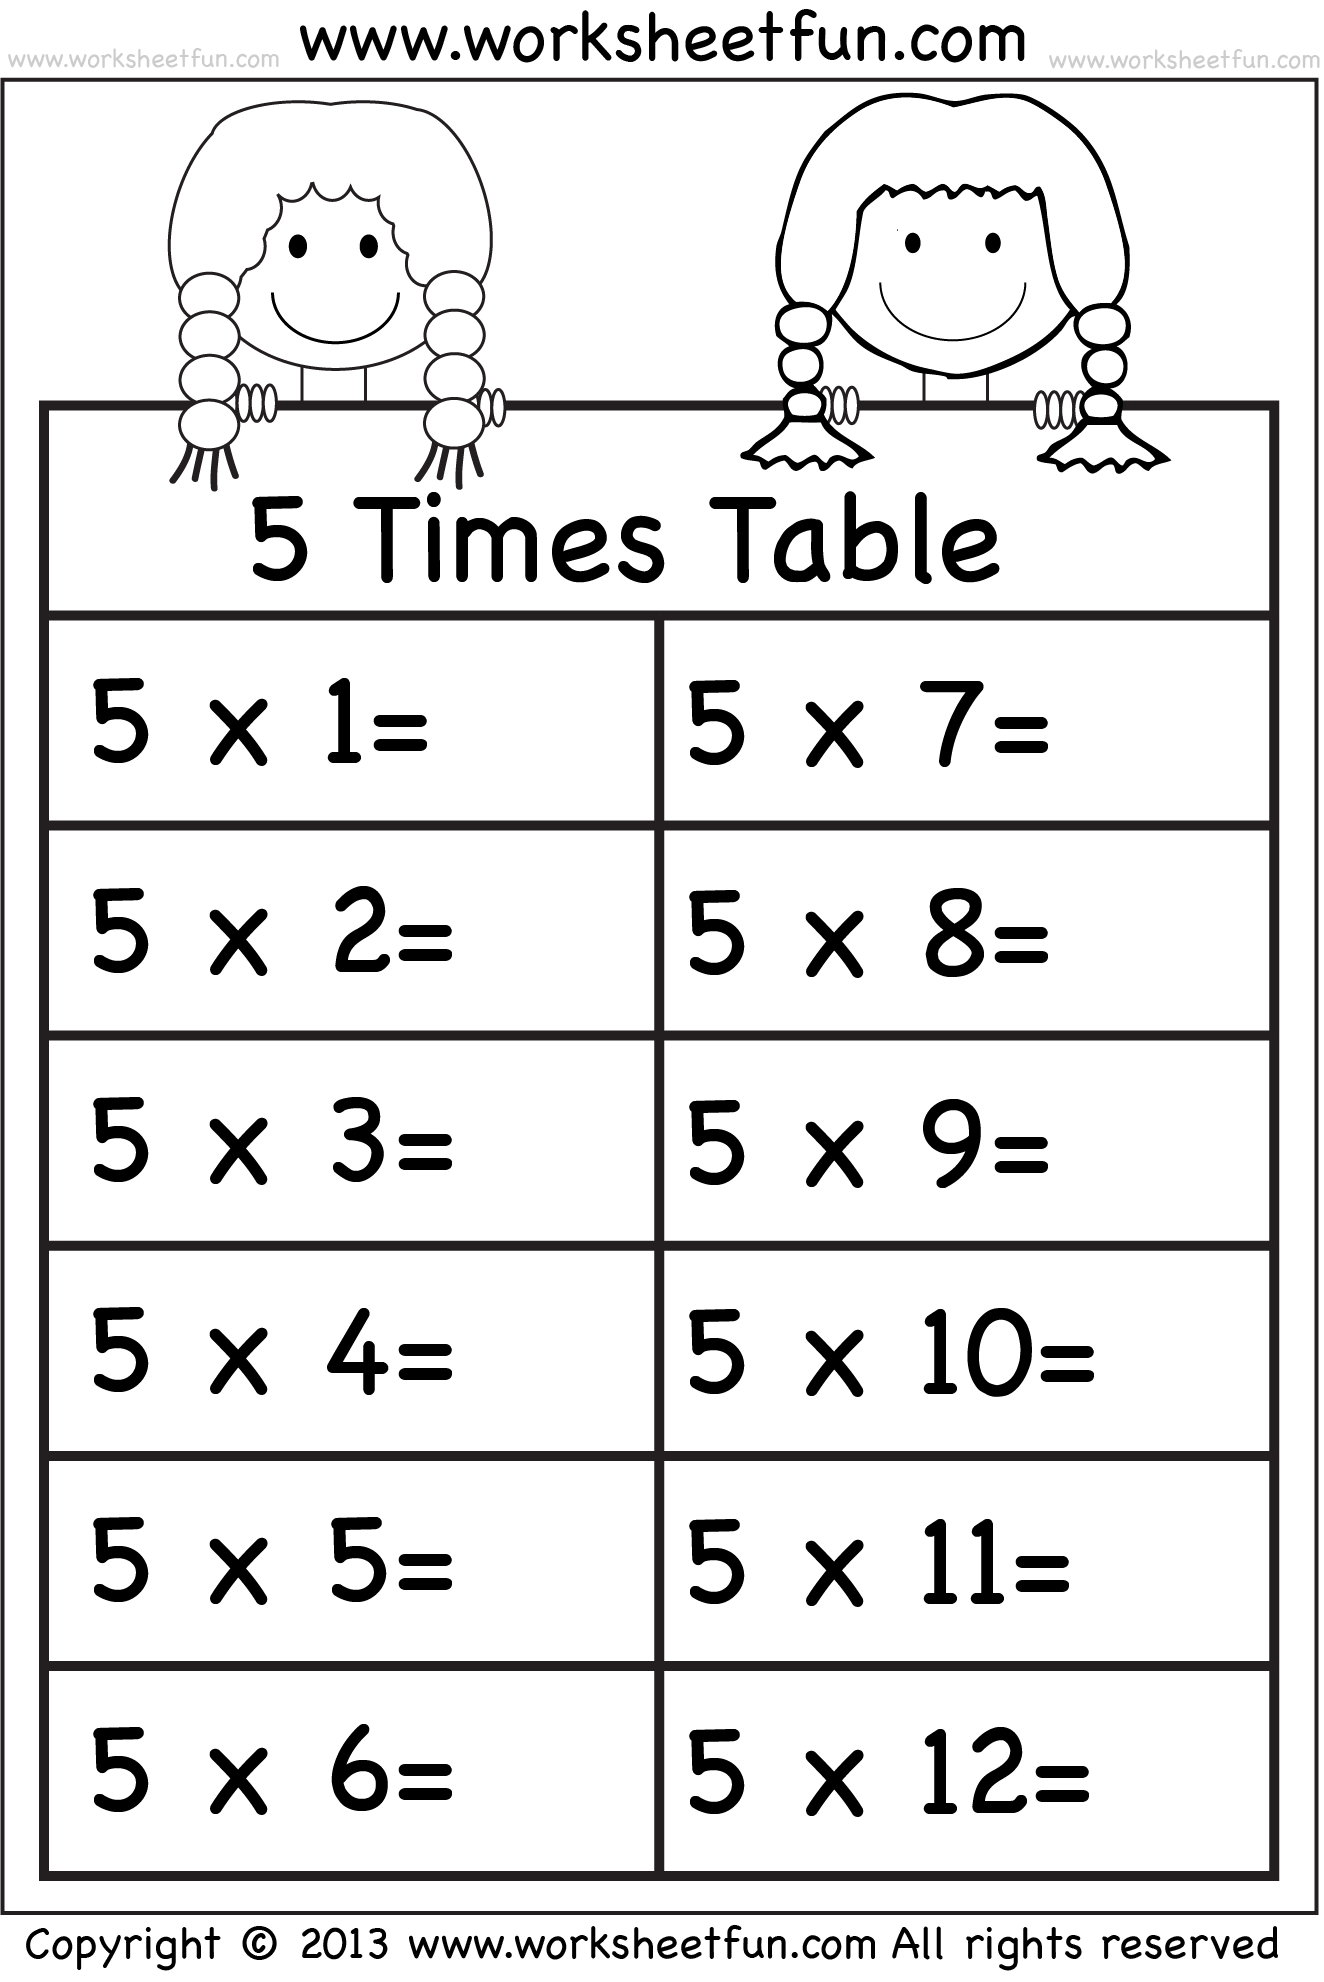 Multiplication Worksheets For 5 Times Tables 193196